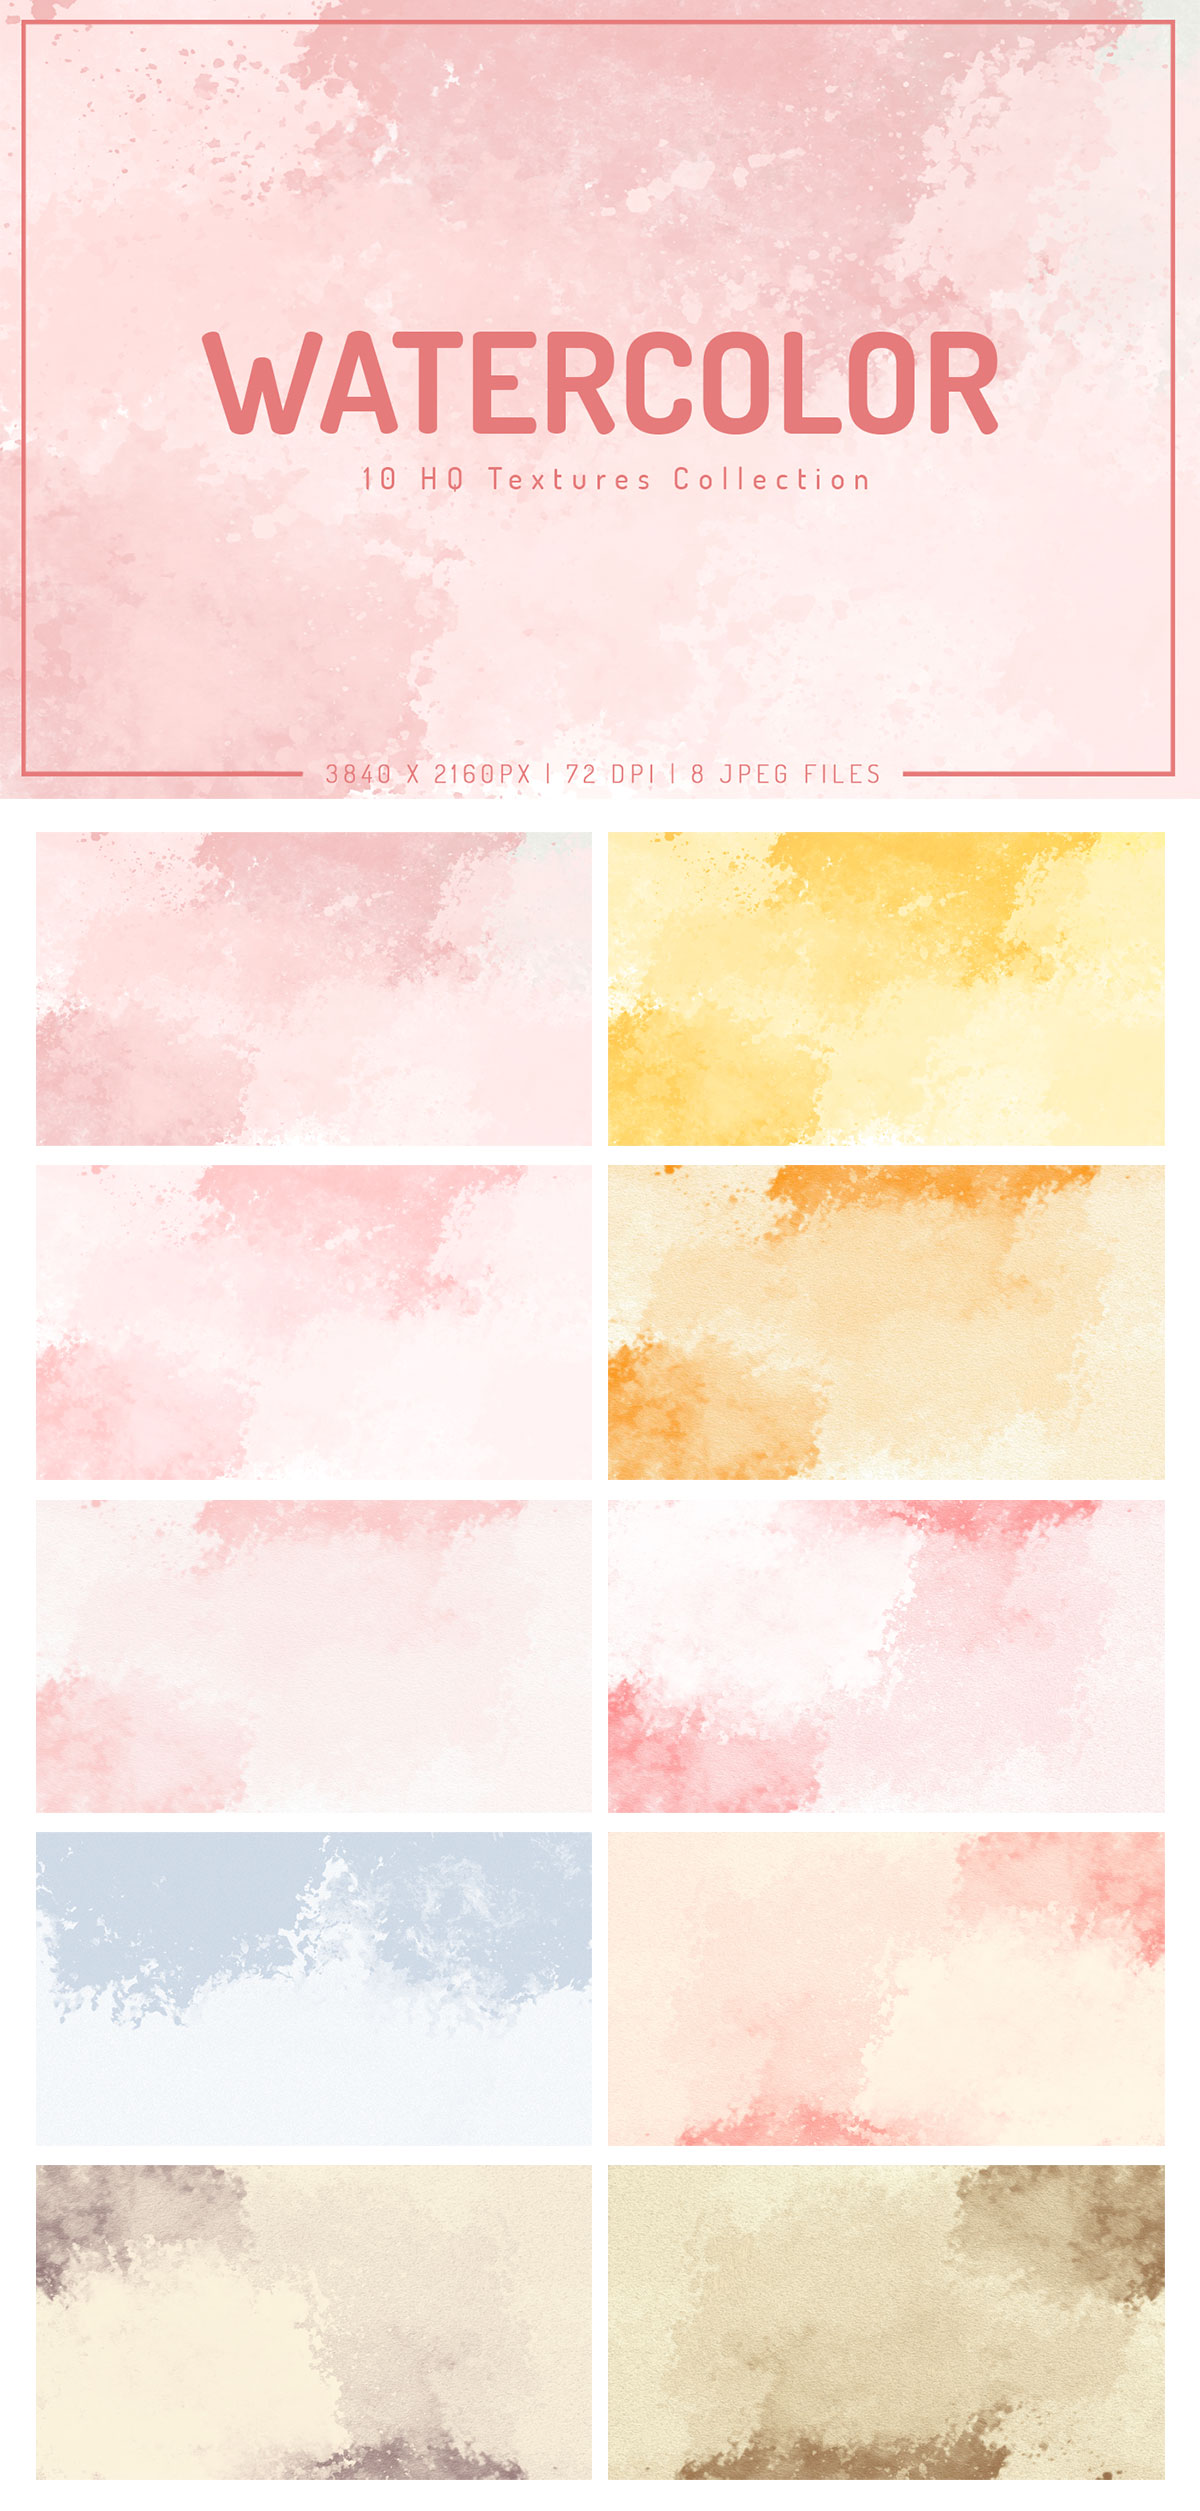 Free Watercolor Textures Collection 2019